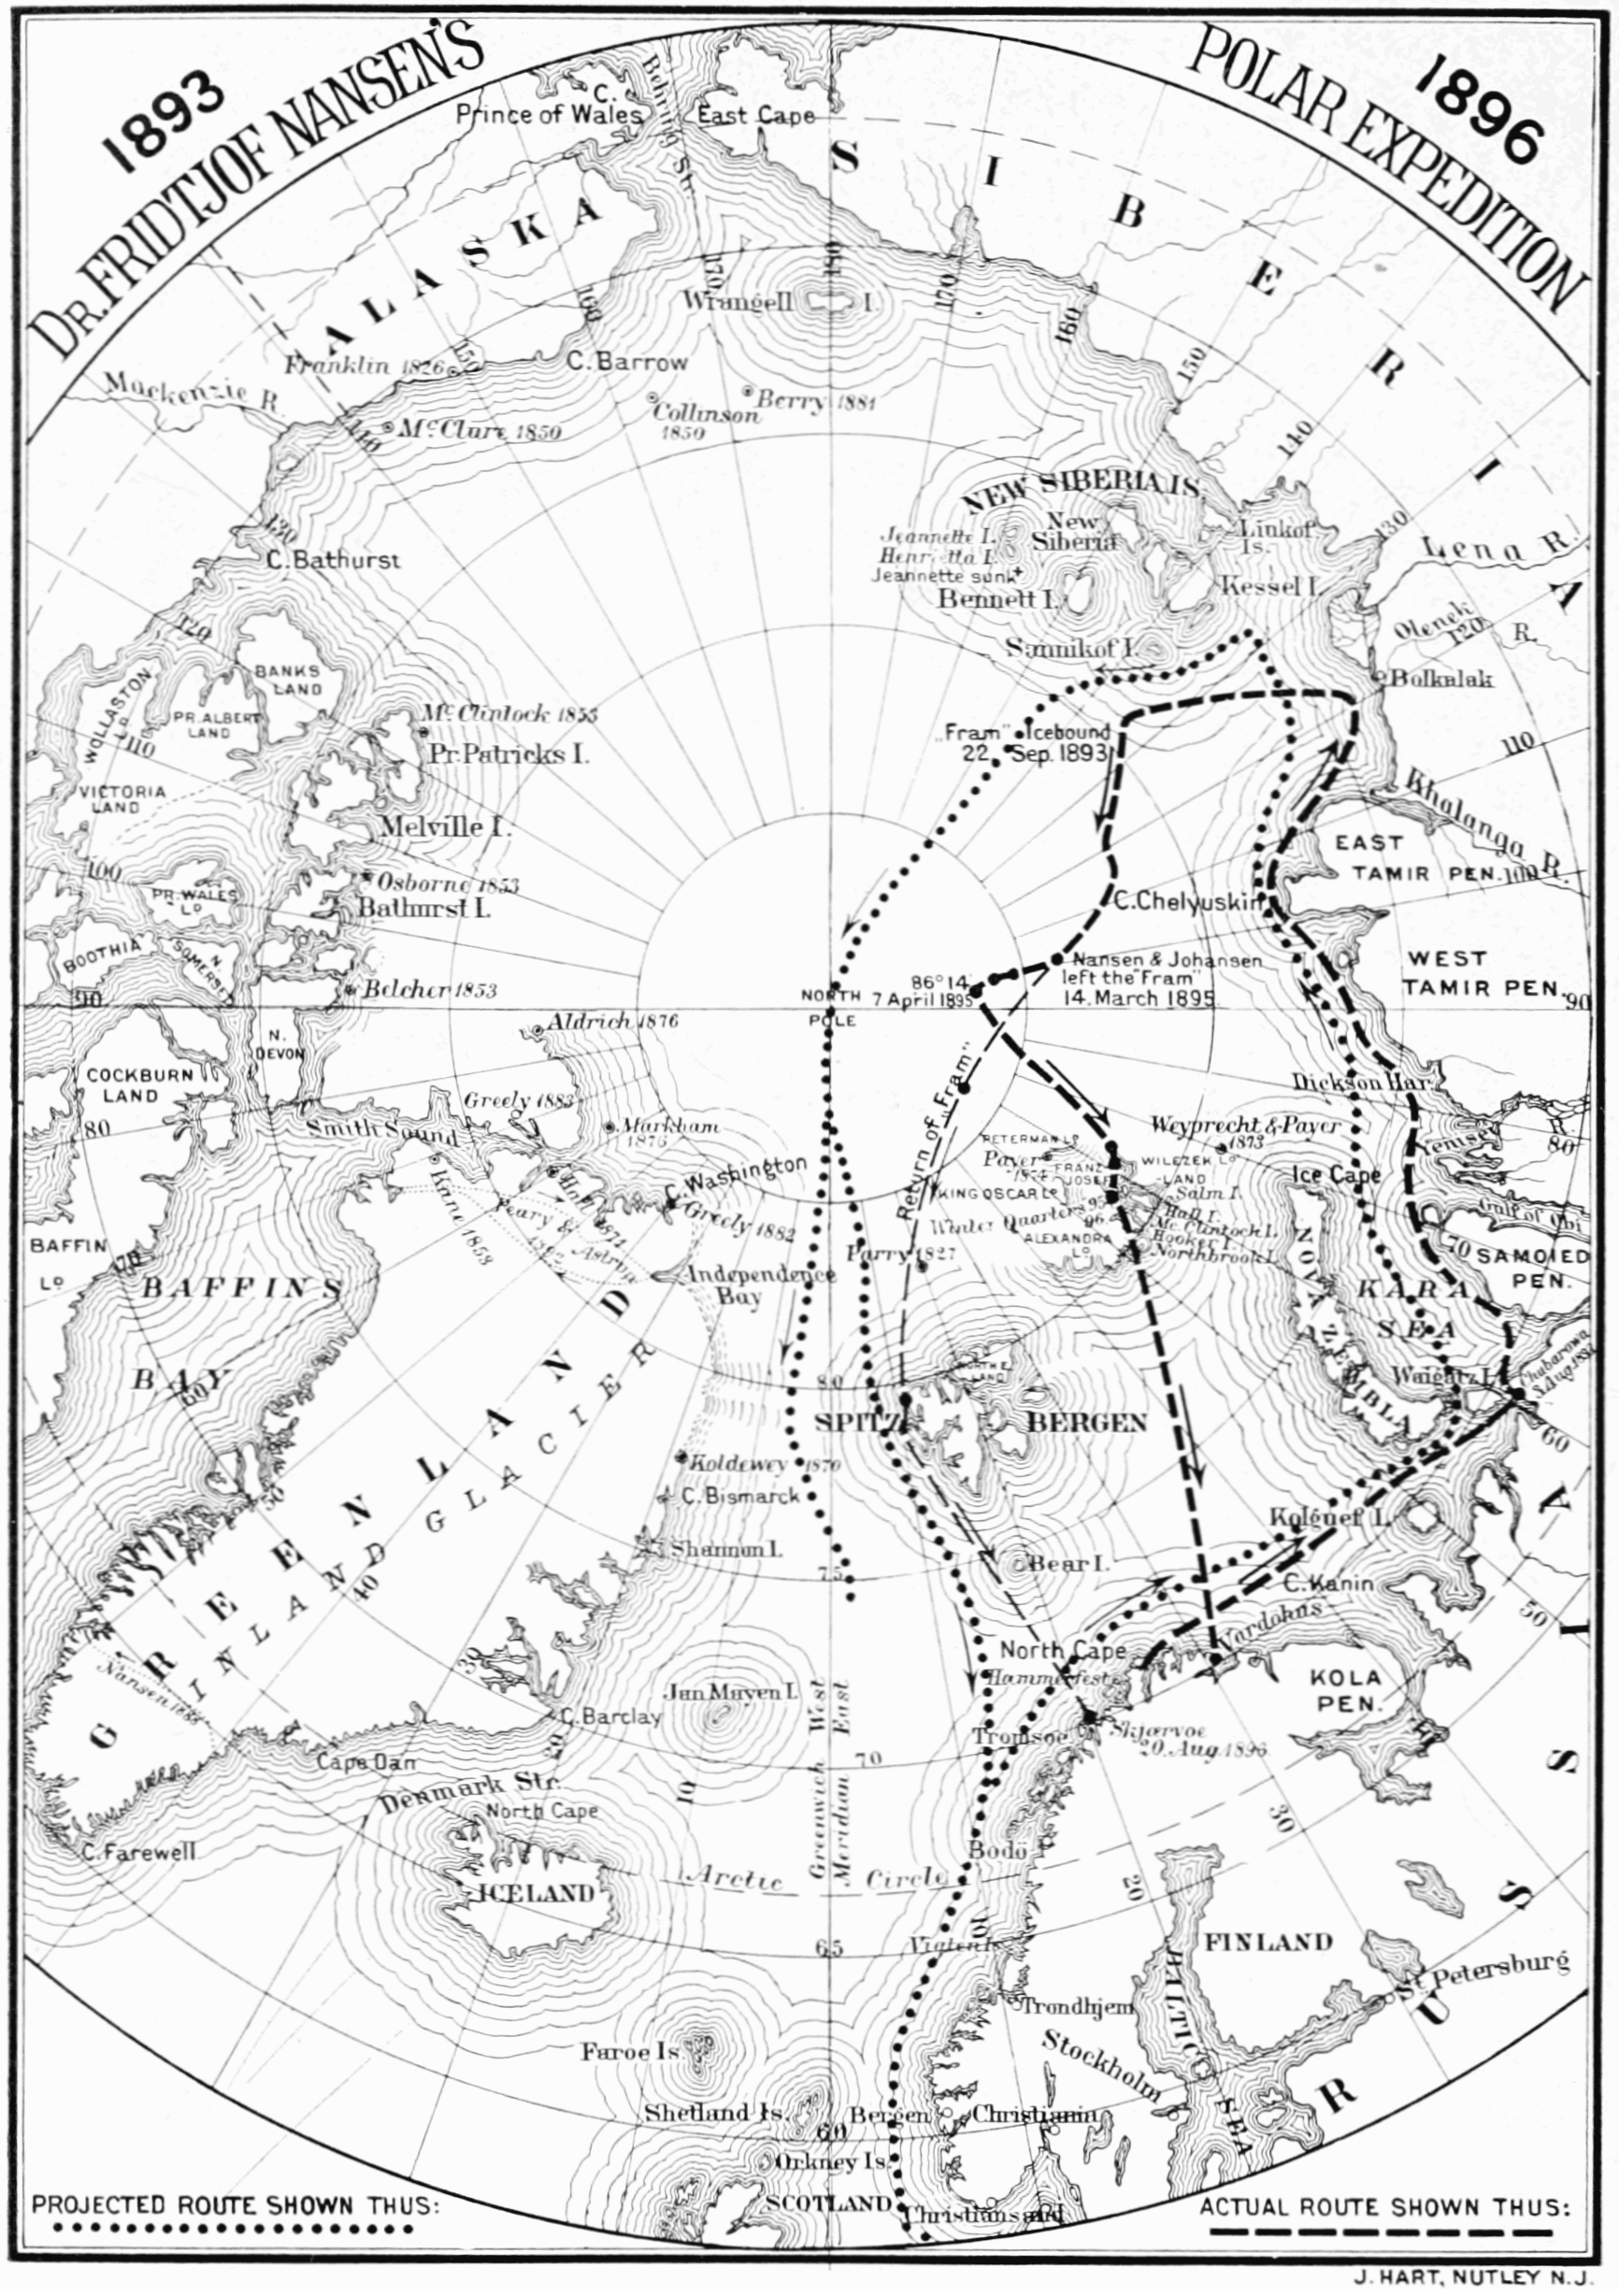 PSM V57 D434 Map showing the regions traversed by nansen.png